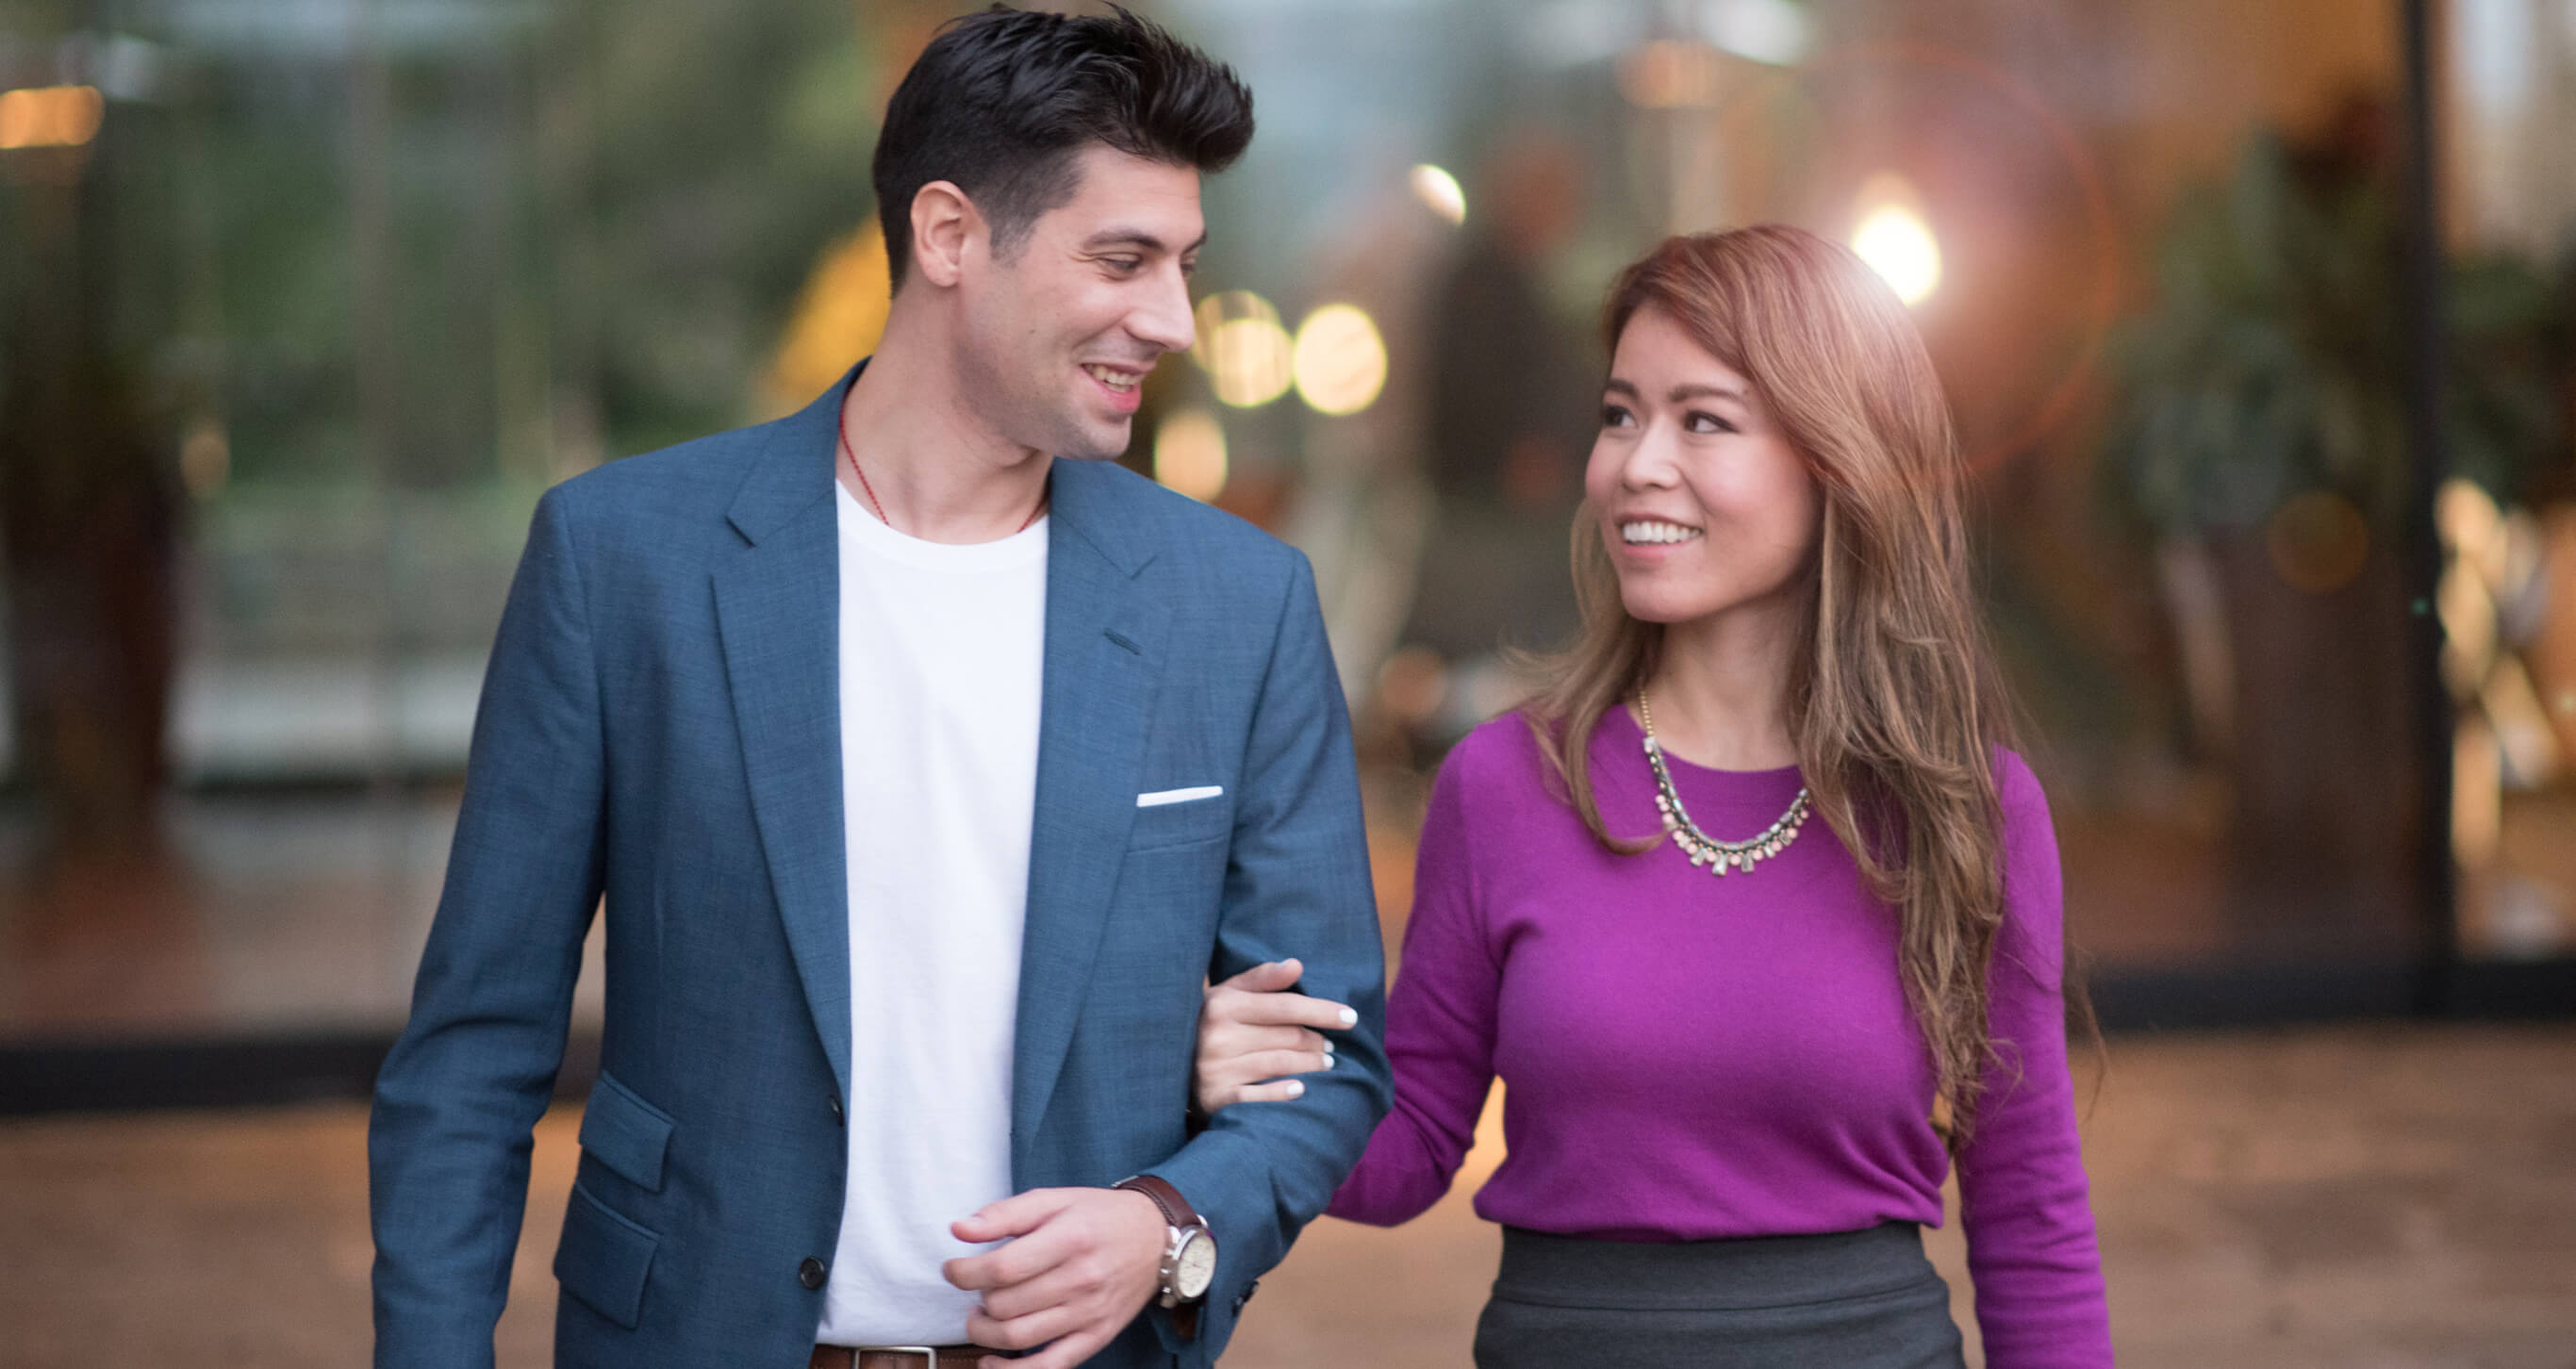 The Meet Group Releases Blind Date To Dating Apps Meetme, Skout, Tagged, And Match Group's Plenty Of Fish